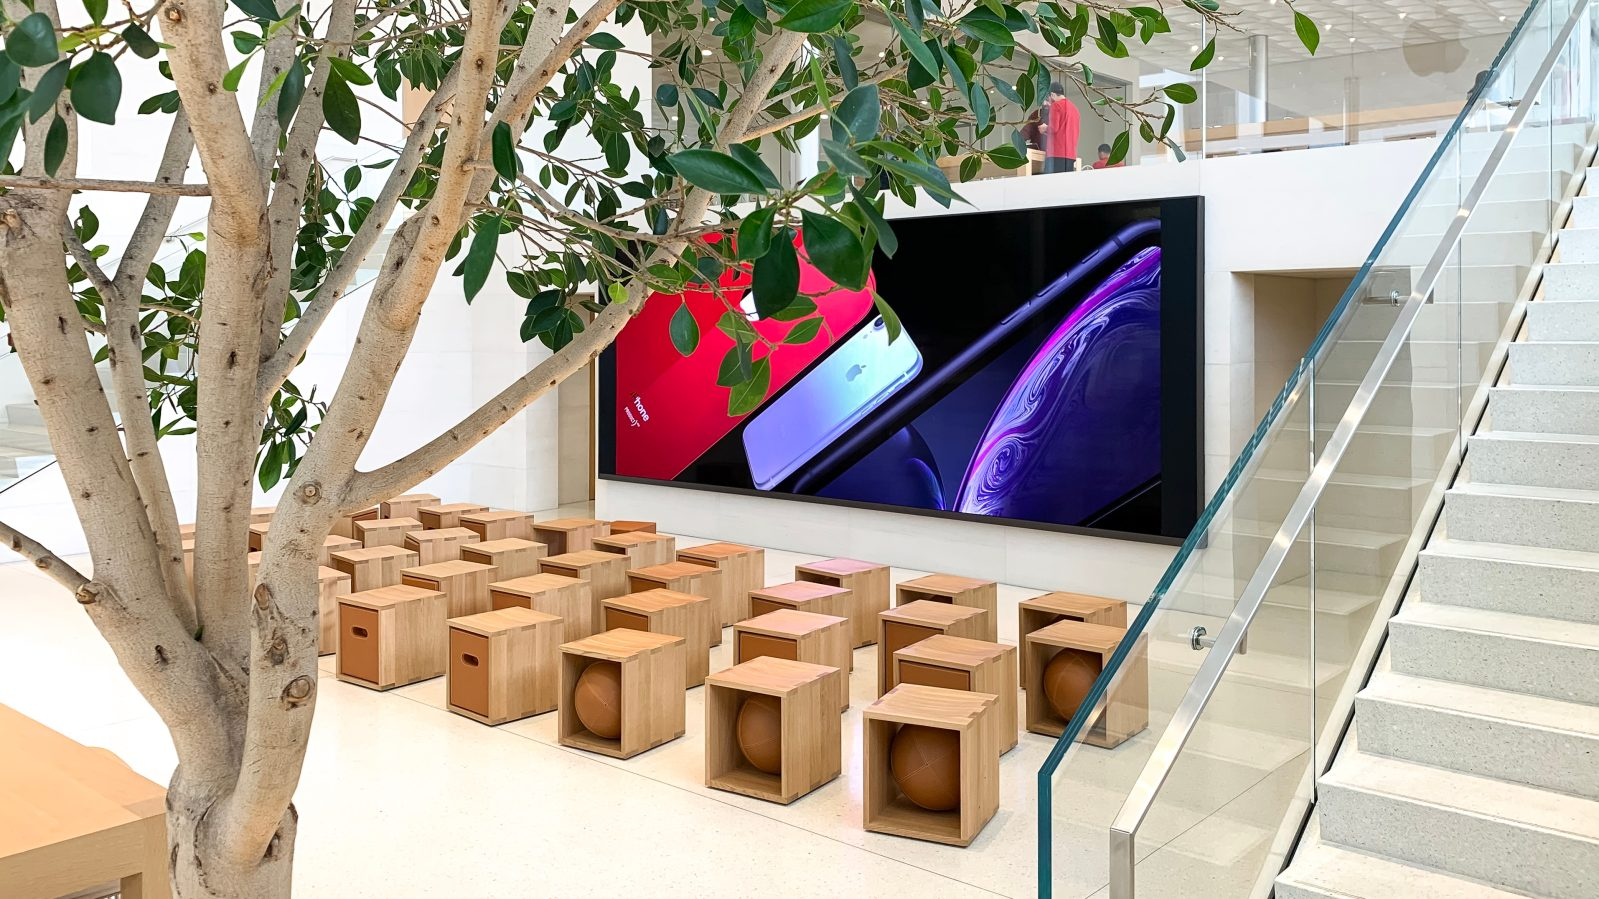 Angela Ahrendts discusses experiential retail and Today at